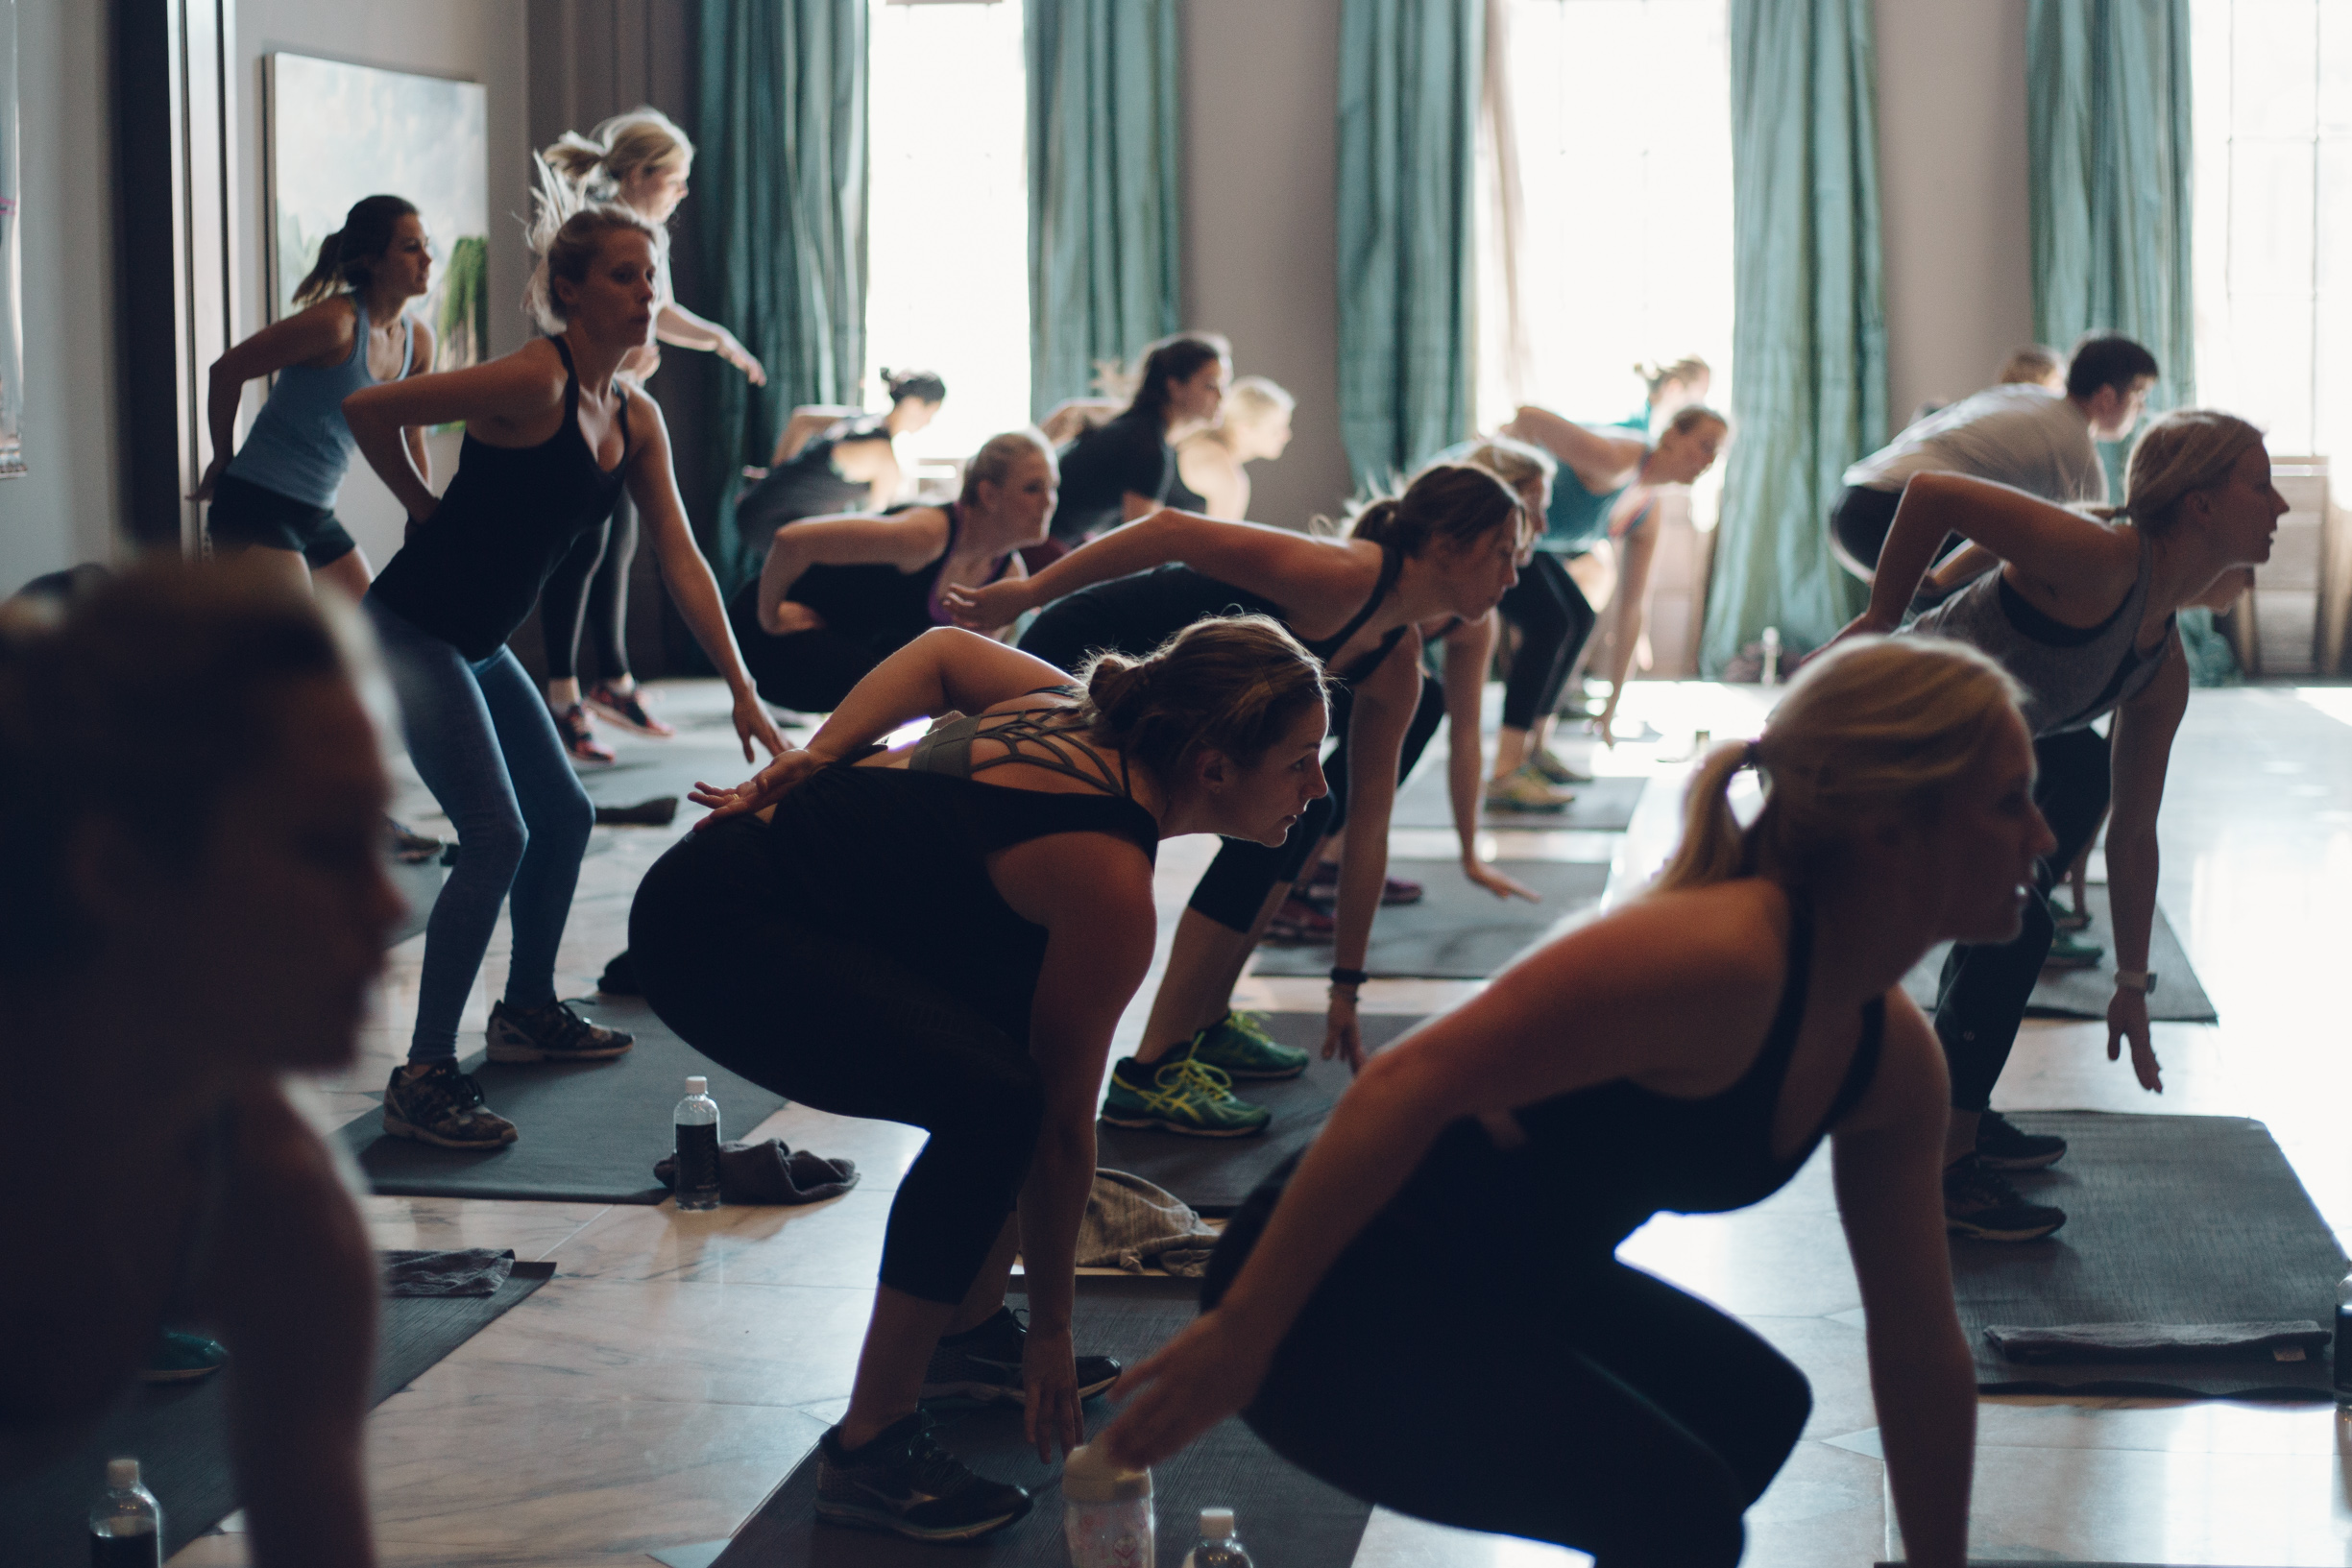 Join us January 7  , as we leave the studio to convert downtown Baton Rouge into a morning of wellness. We will start with a workout led by our founder Nicole Williamson followed by a Magpie Cafe curated brunch!